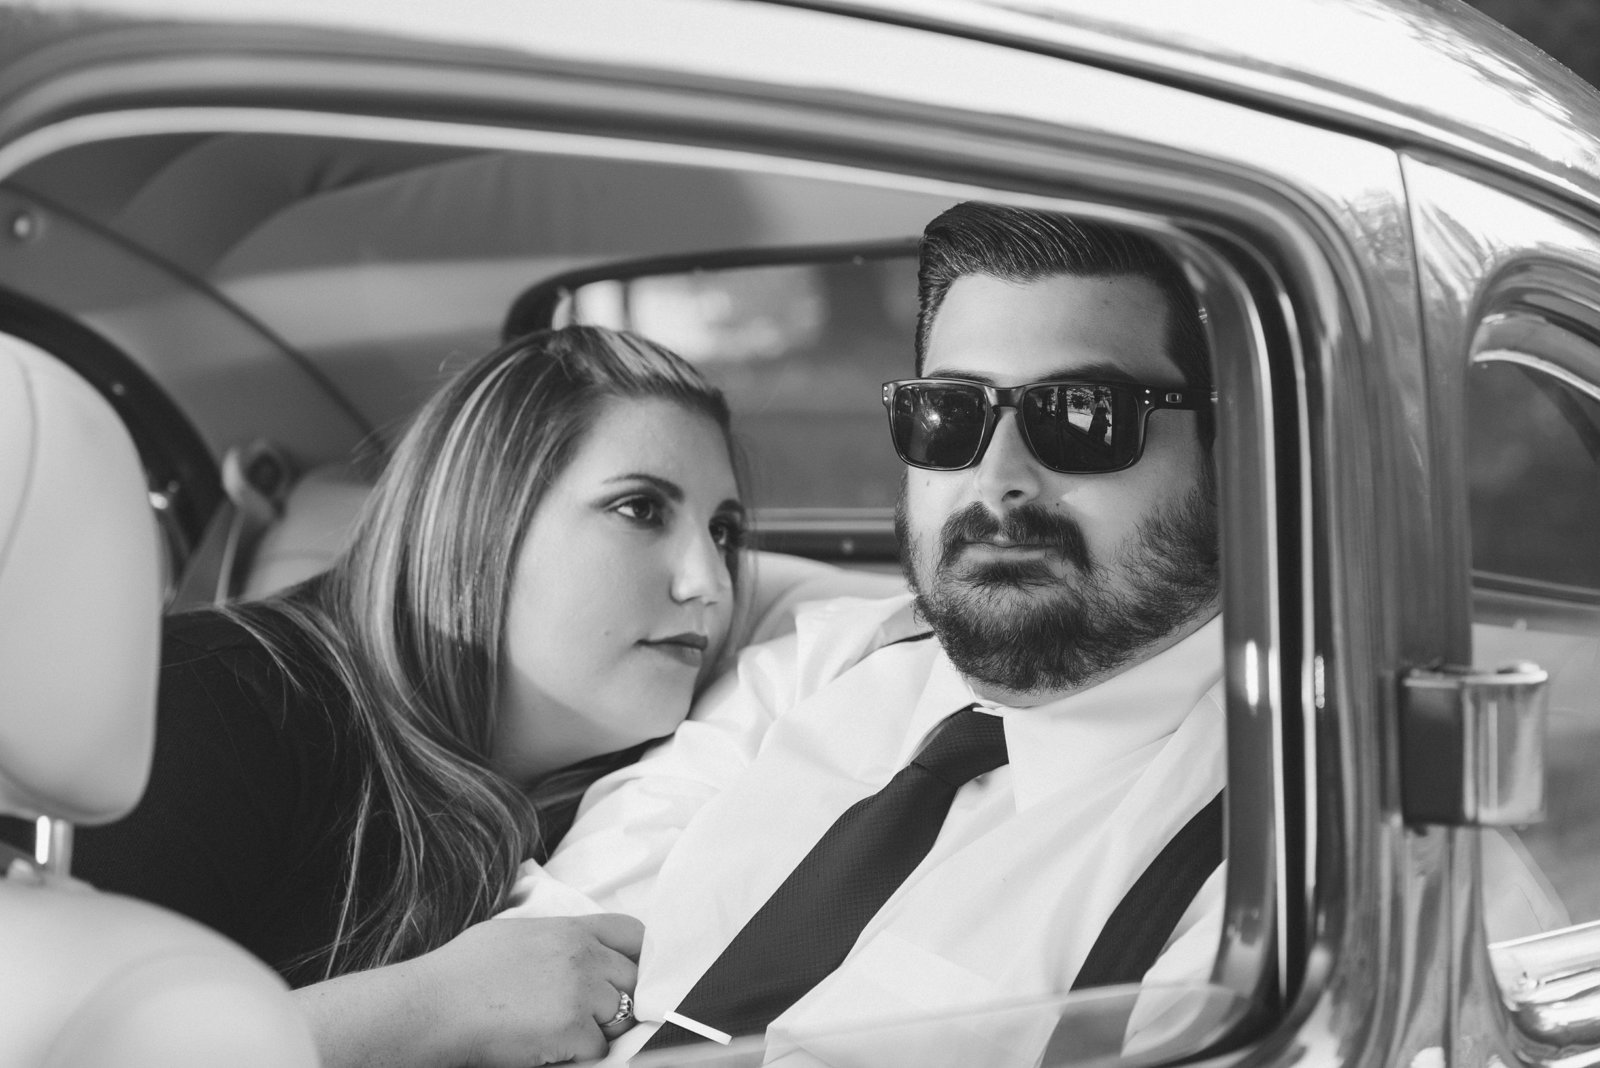 Retro_Pinup_Car_engagement_session_Nj033